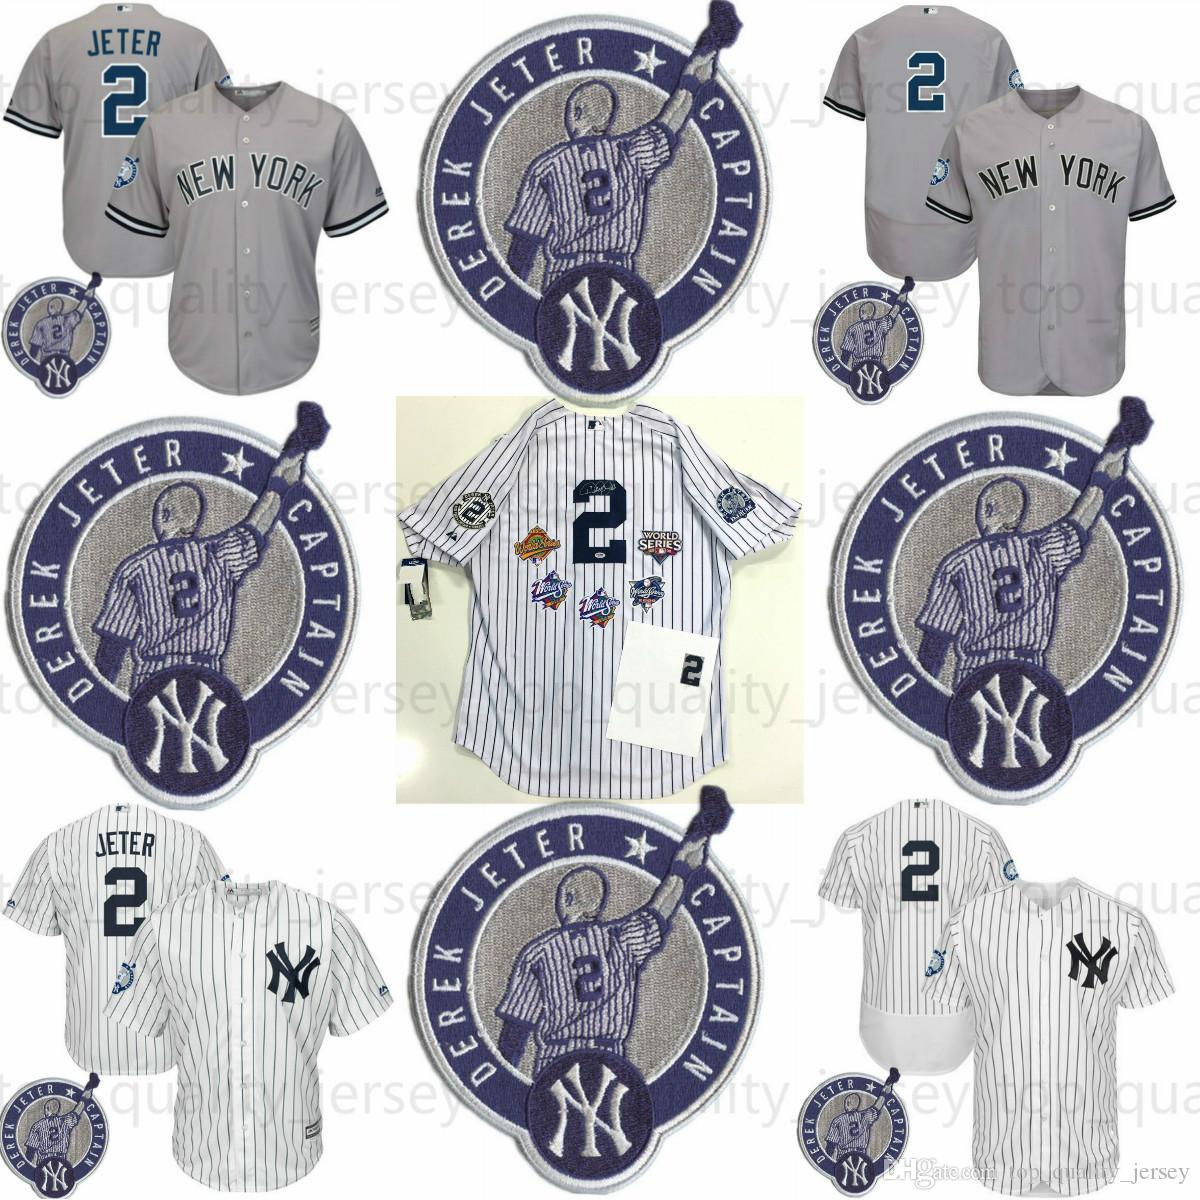 4c84296b847 new york yankees 2 derek jeter white with gold retirement patch jersey